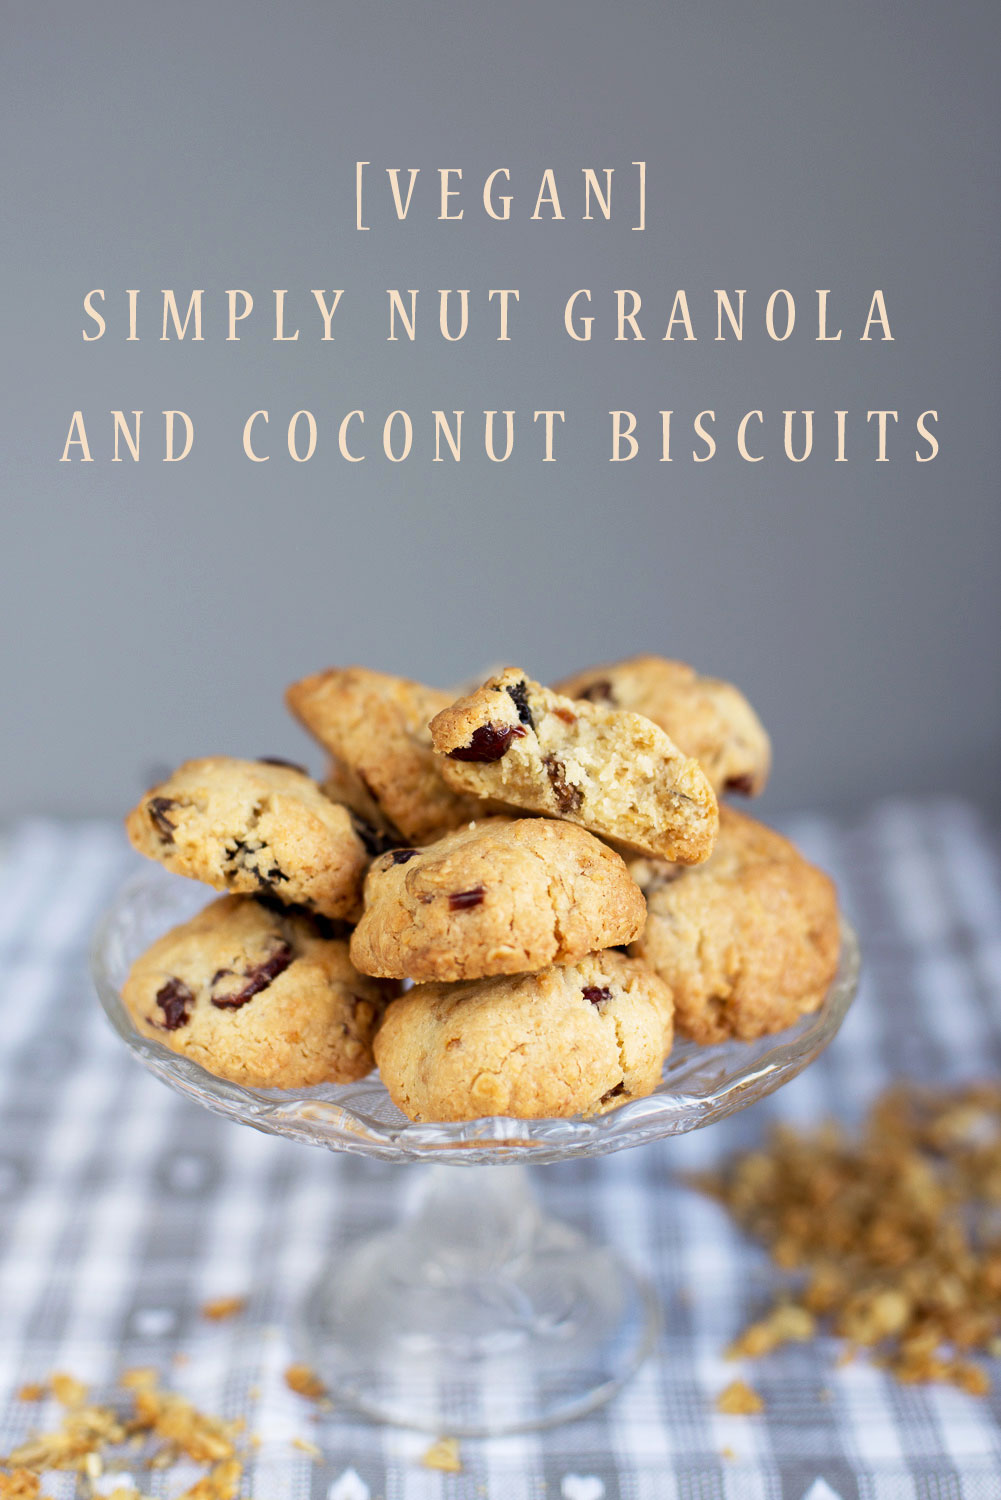 Vegan-Simply-Nut-Granola-Biscuits